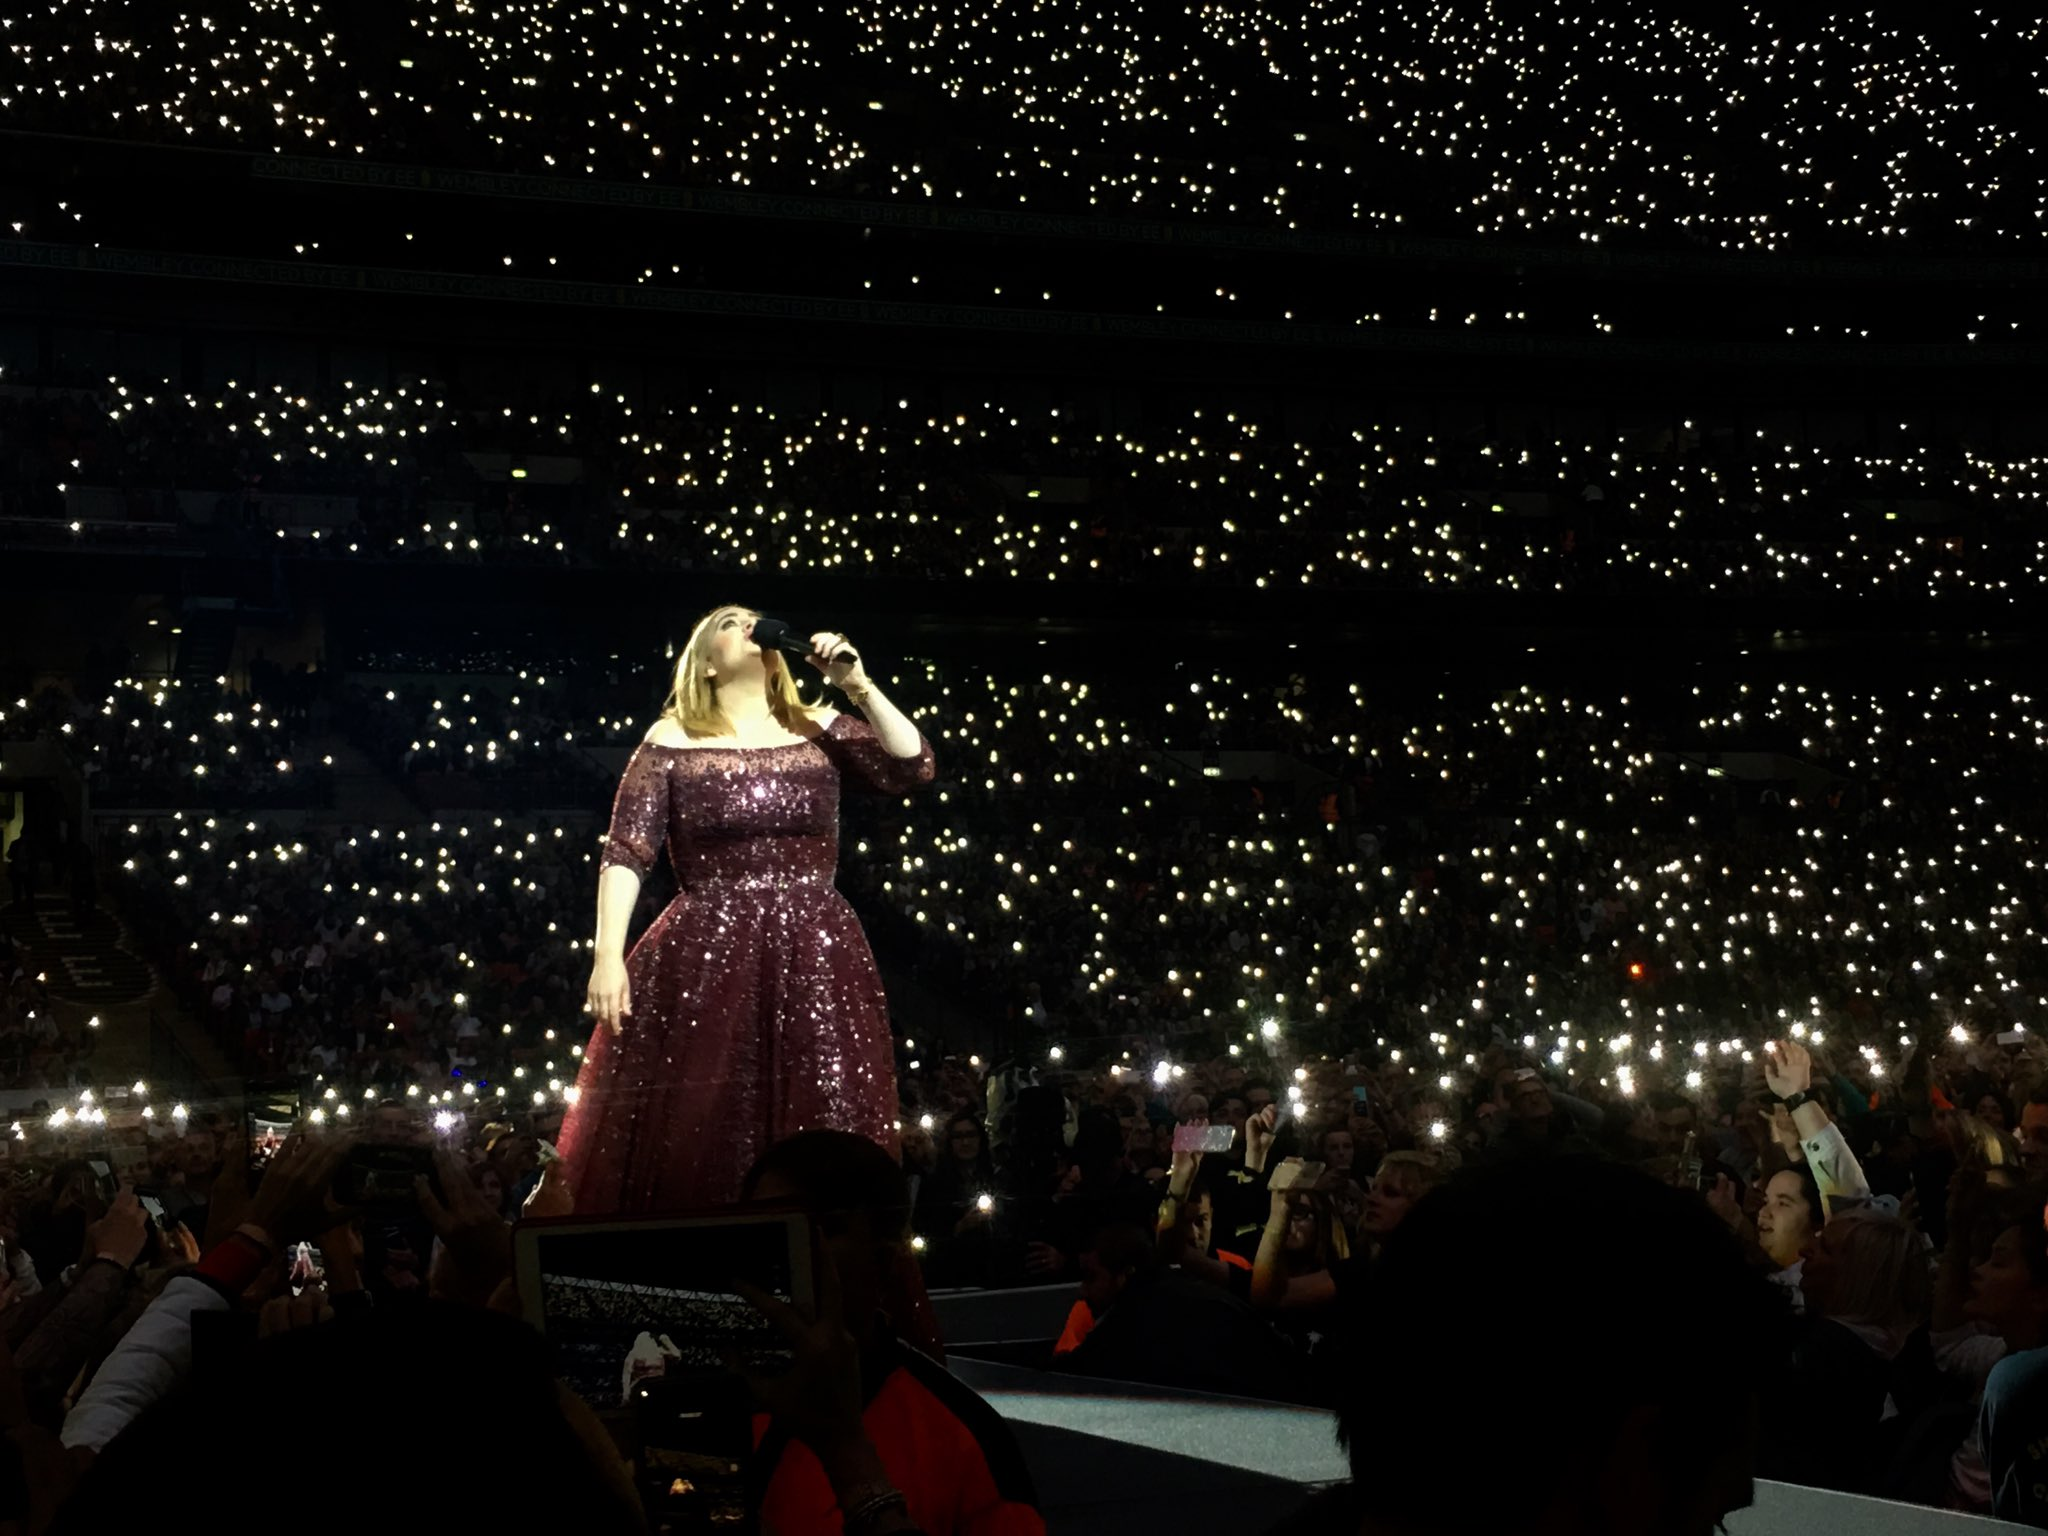 Happy birthday to the one and only, adele. watching her live was a life changing experience.